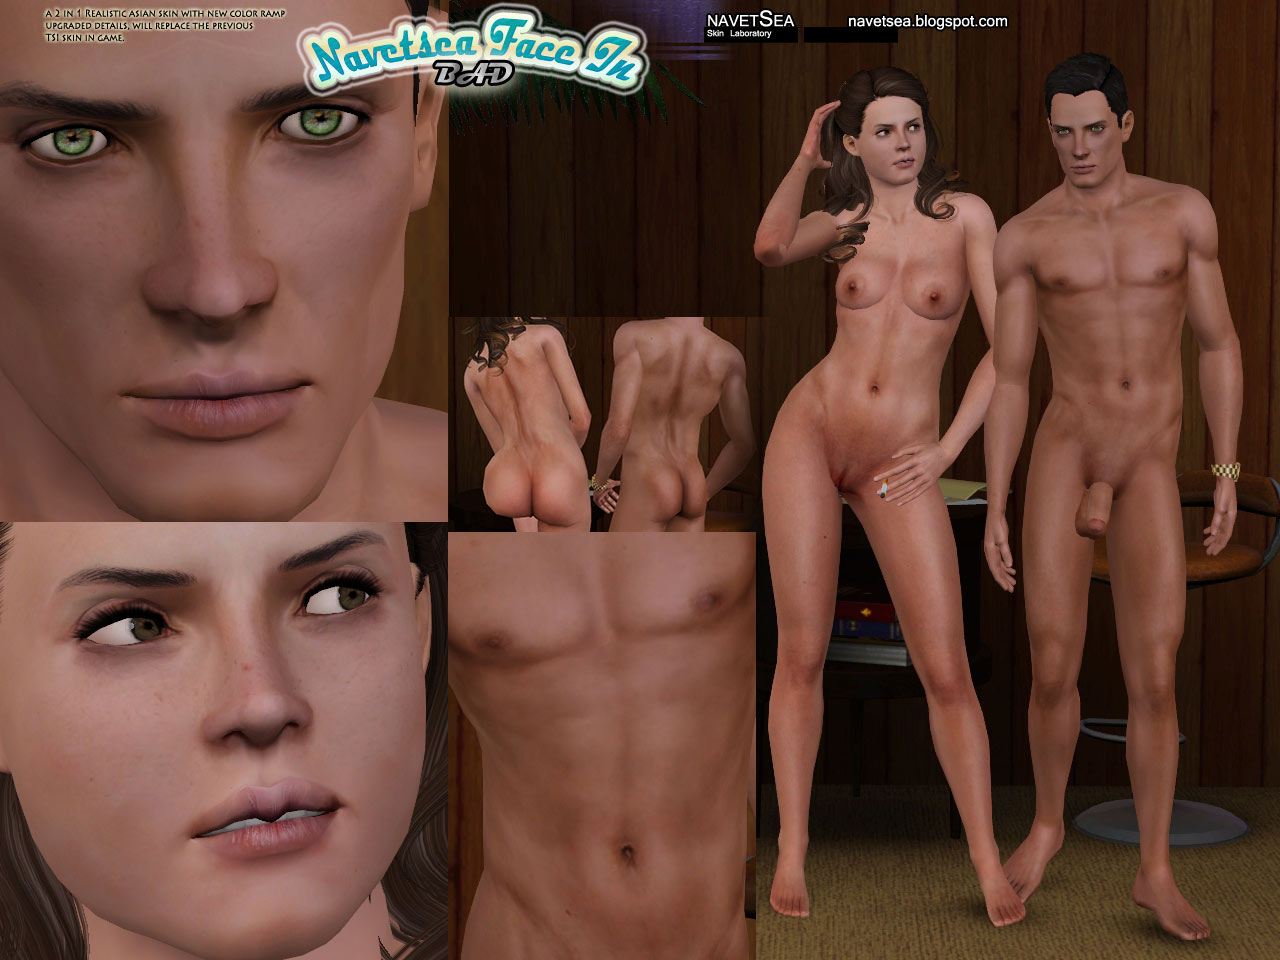 Prince of persia xxx 3gp video download sexy scene